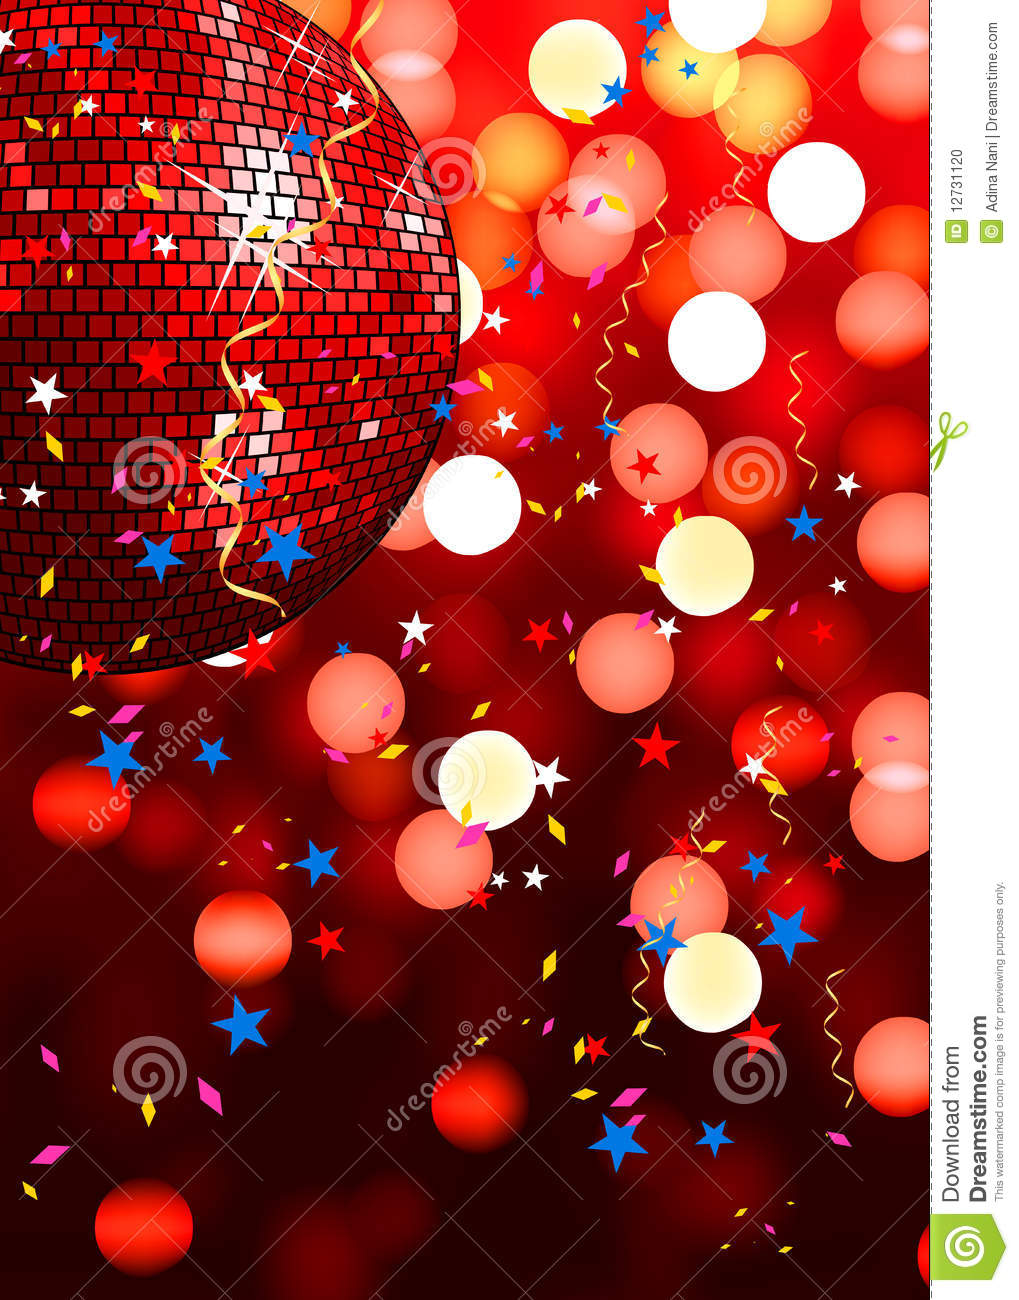 Red party disco background with glowing lights and confetti.